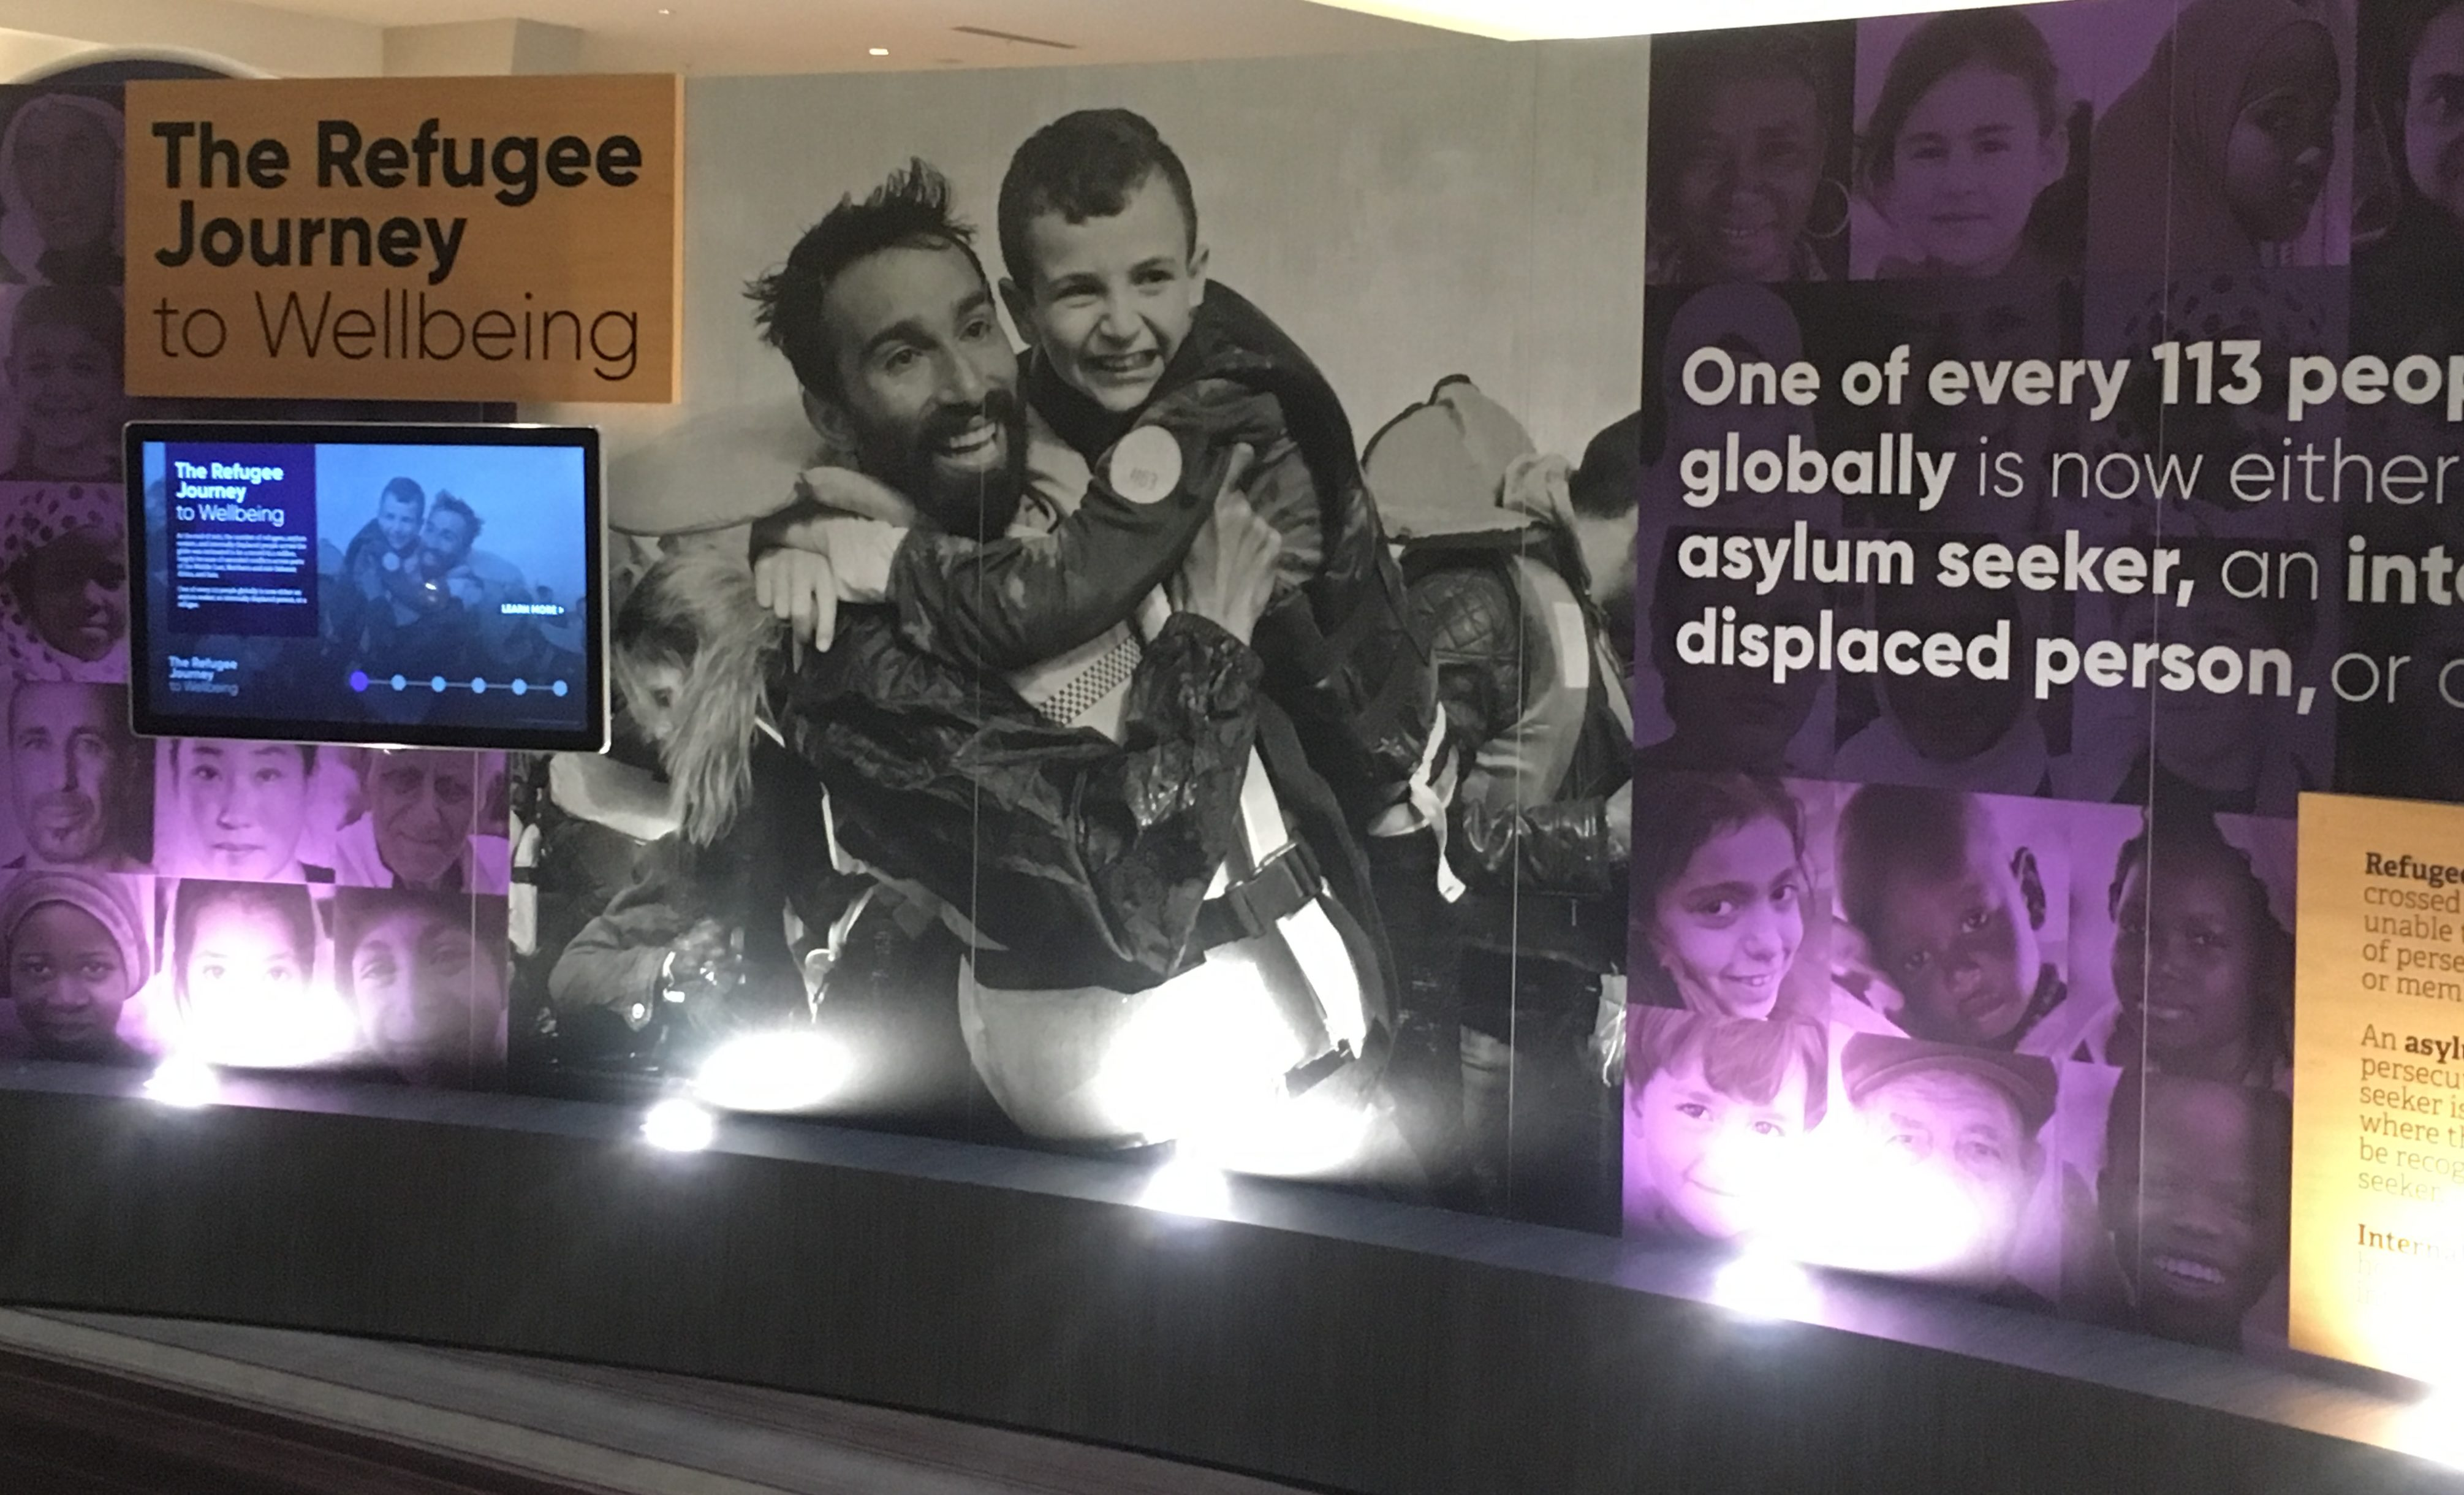 """The """"Refugee Journey to Wellbeing"""" exhibit"""